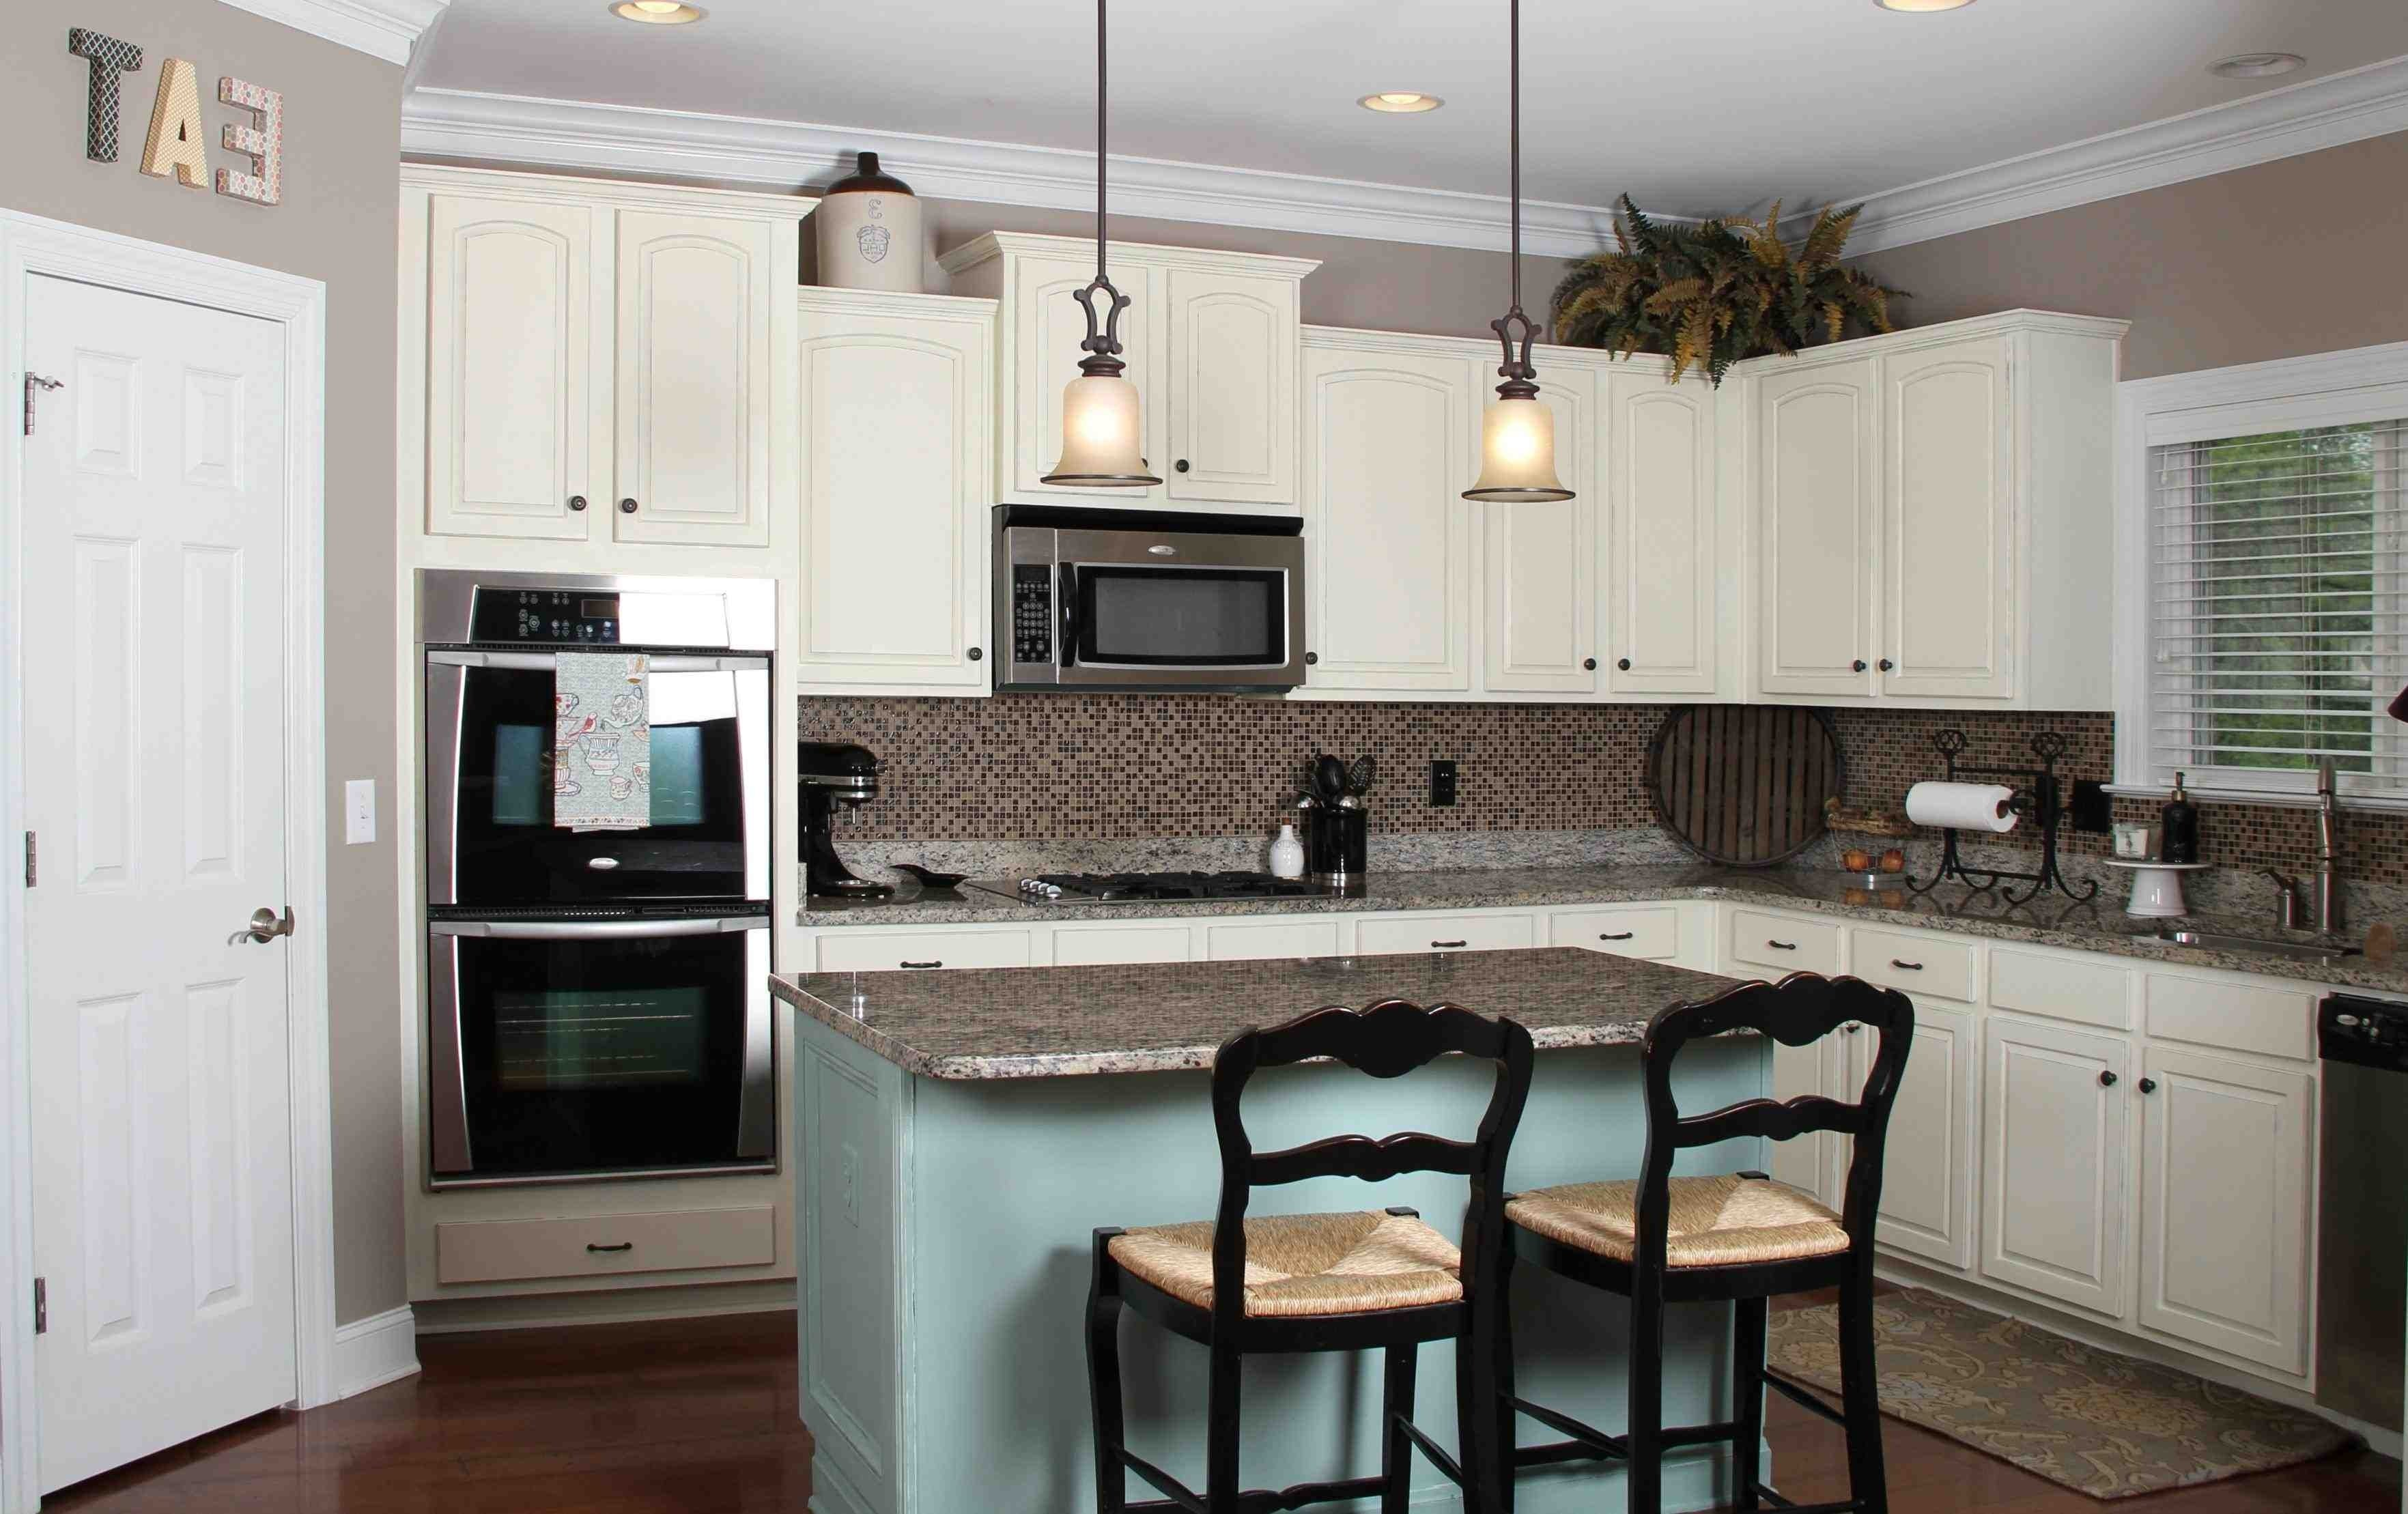 10 Stylish Kitchen Color Ideas With White Cabinets 2021